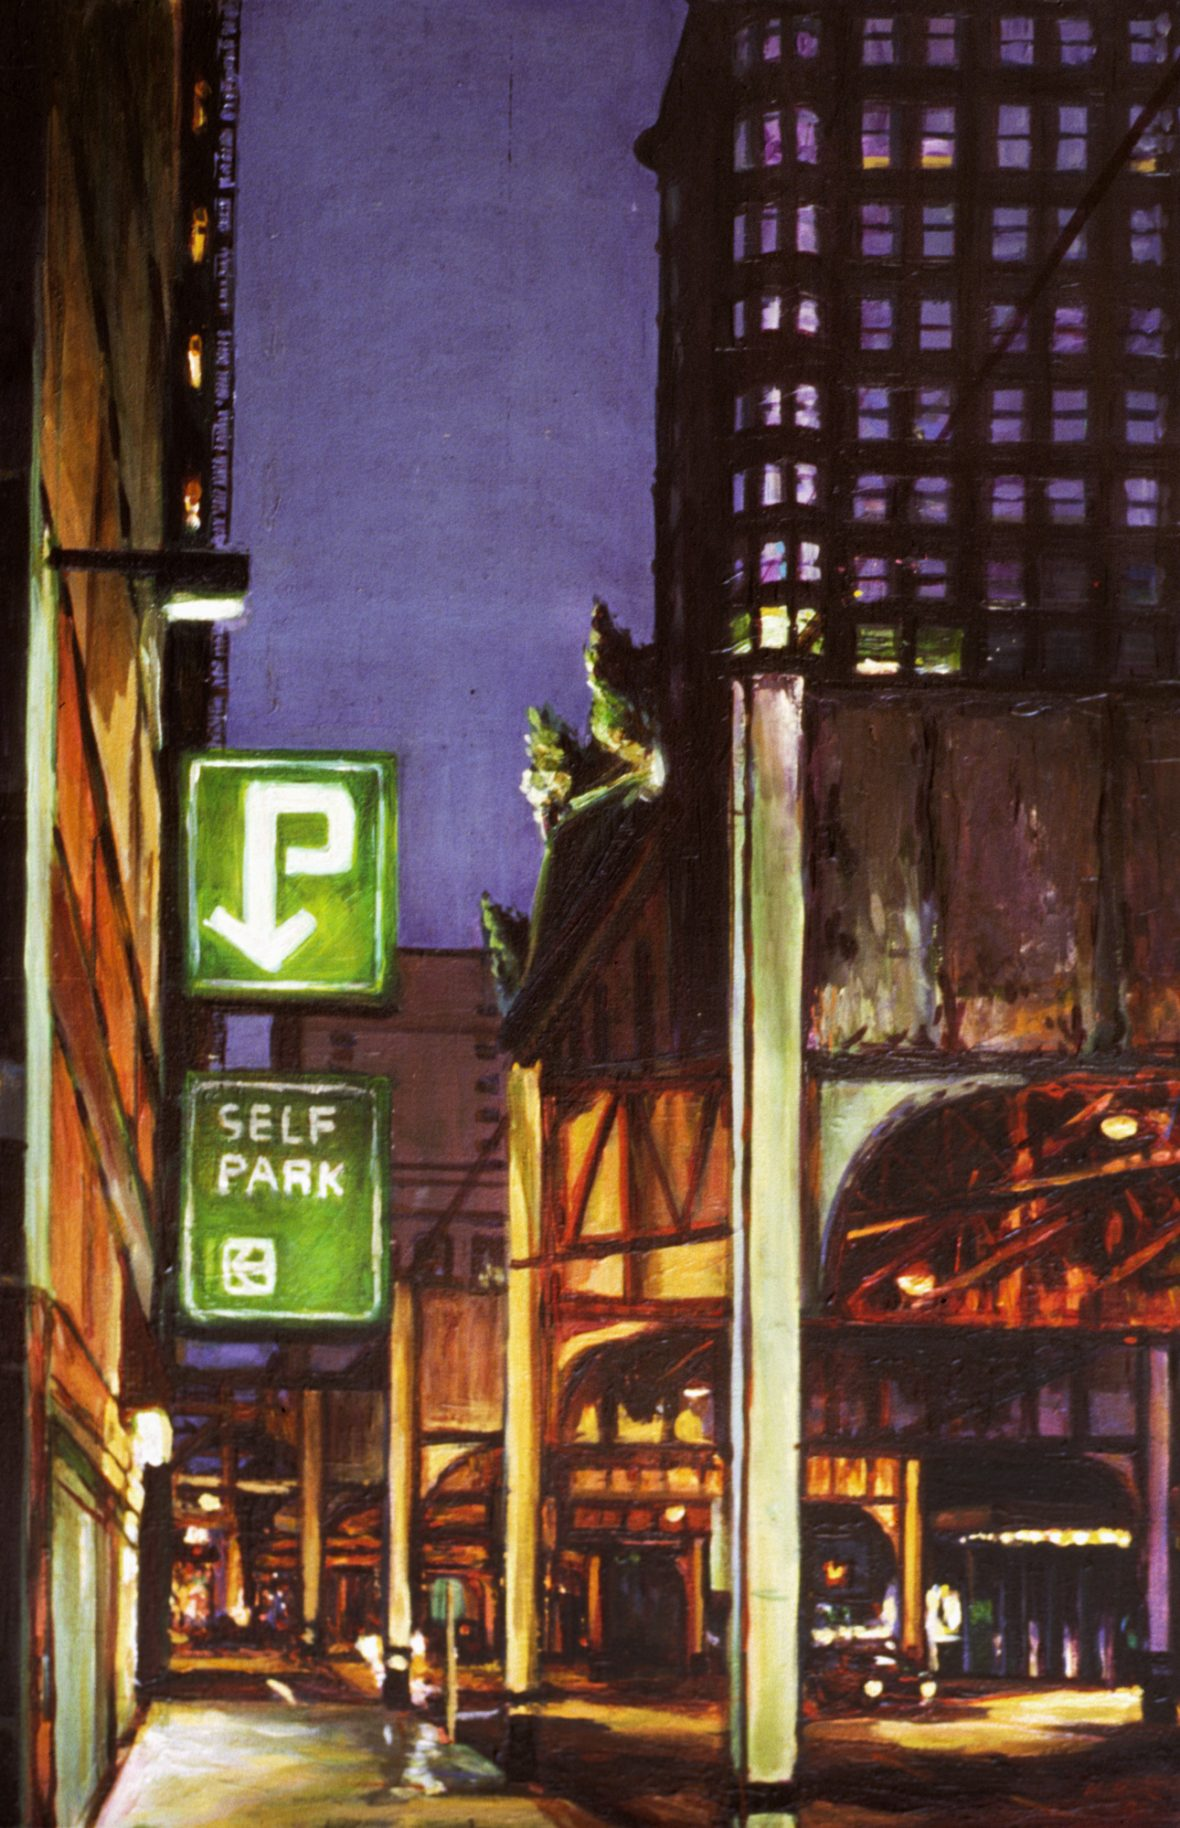 Street at Night (Self Park)